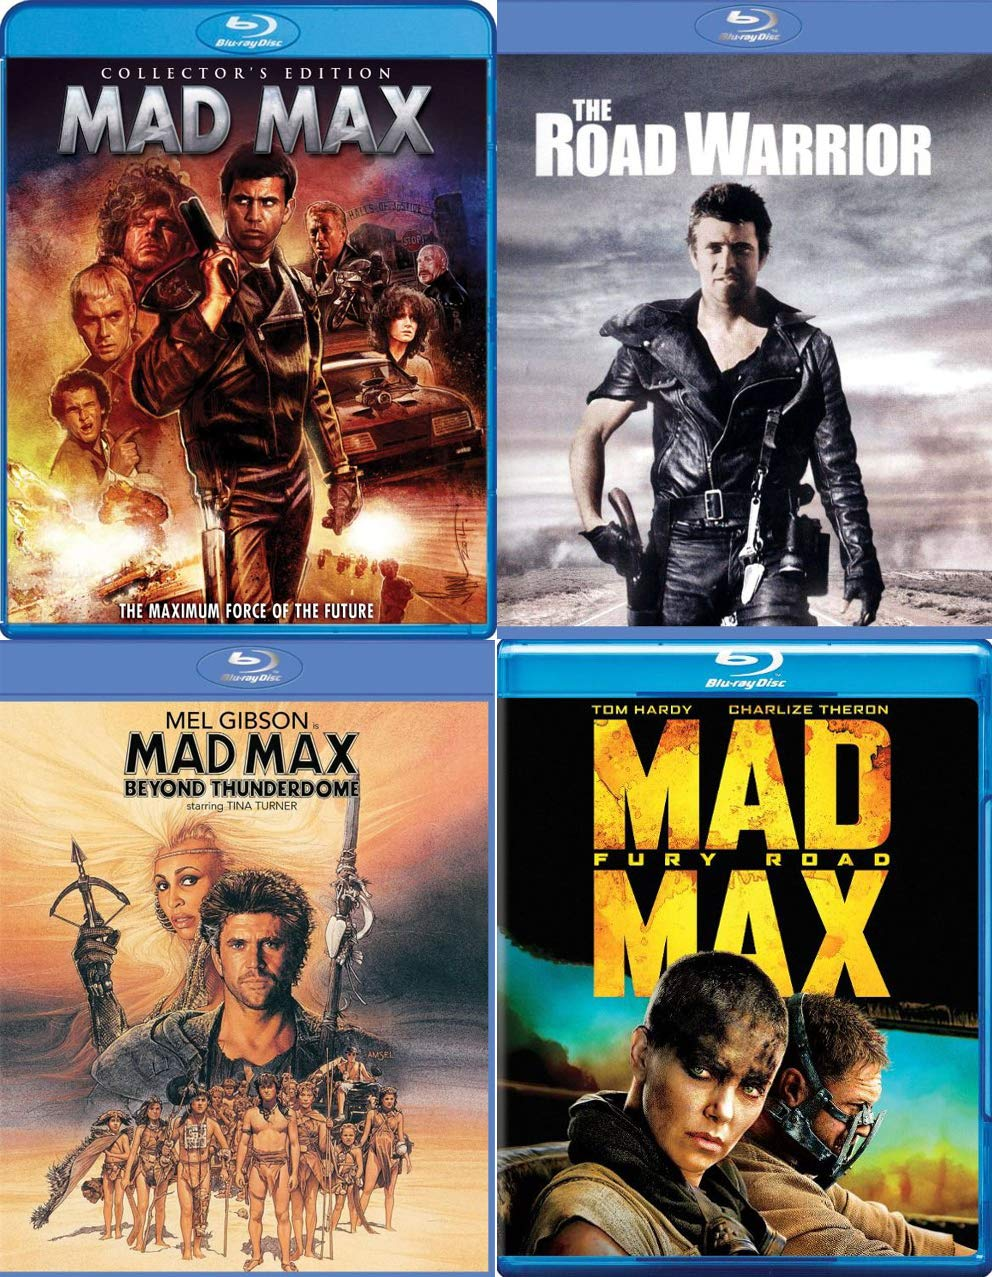 Amazon.com: The Maddest Of Max's The Complete Collection: Mad Max  (Collector's Edition Blu-Ray) + The Road Warrior (Blu-Ray) + Mad Max Beyond  Thunderdome (Blu-Ray) + Mad Max Fury Road (Blu-Ray) 4 MOVIE